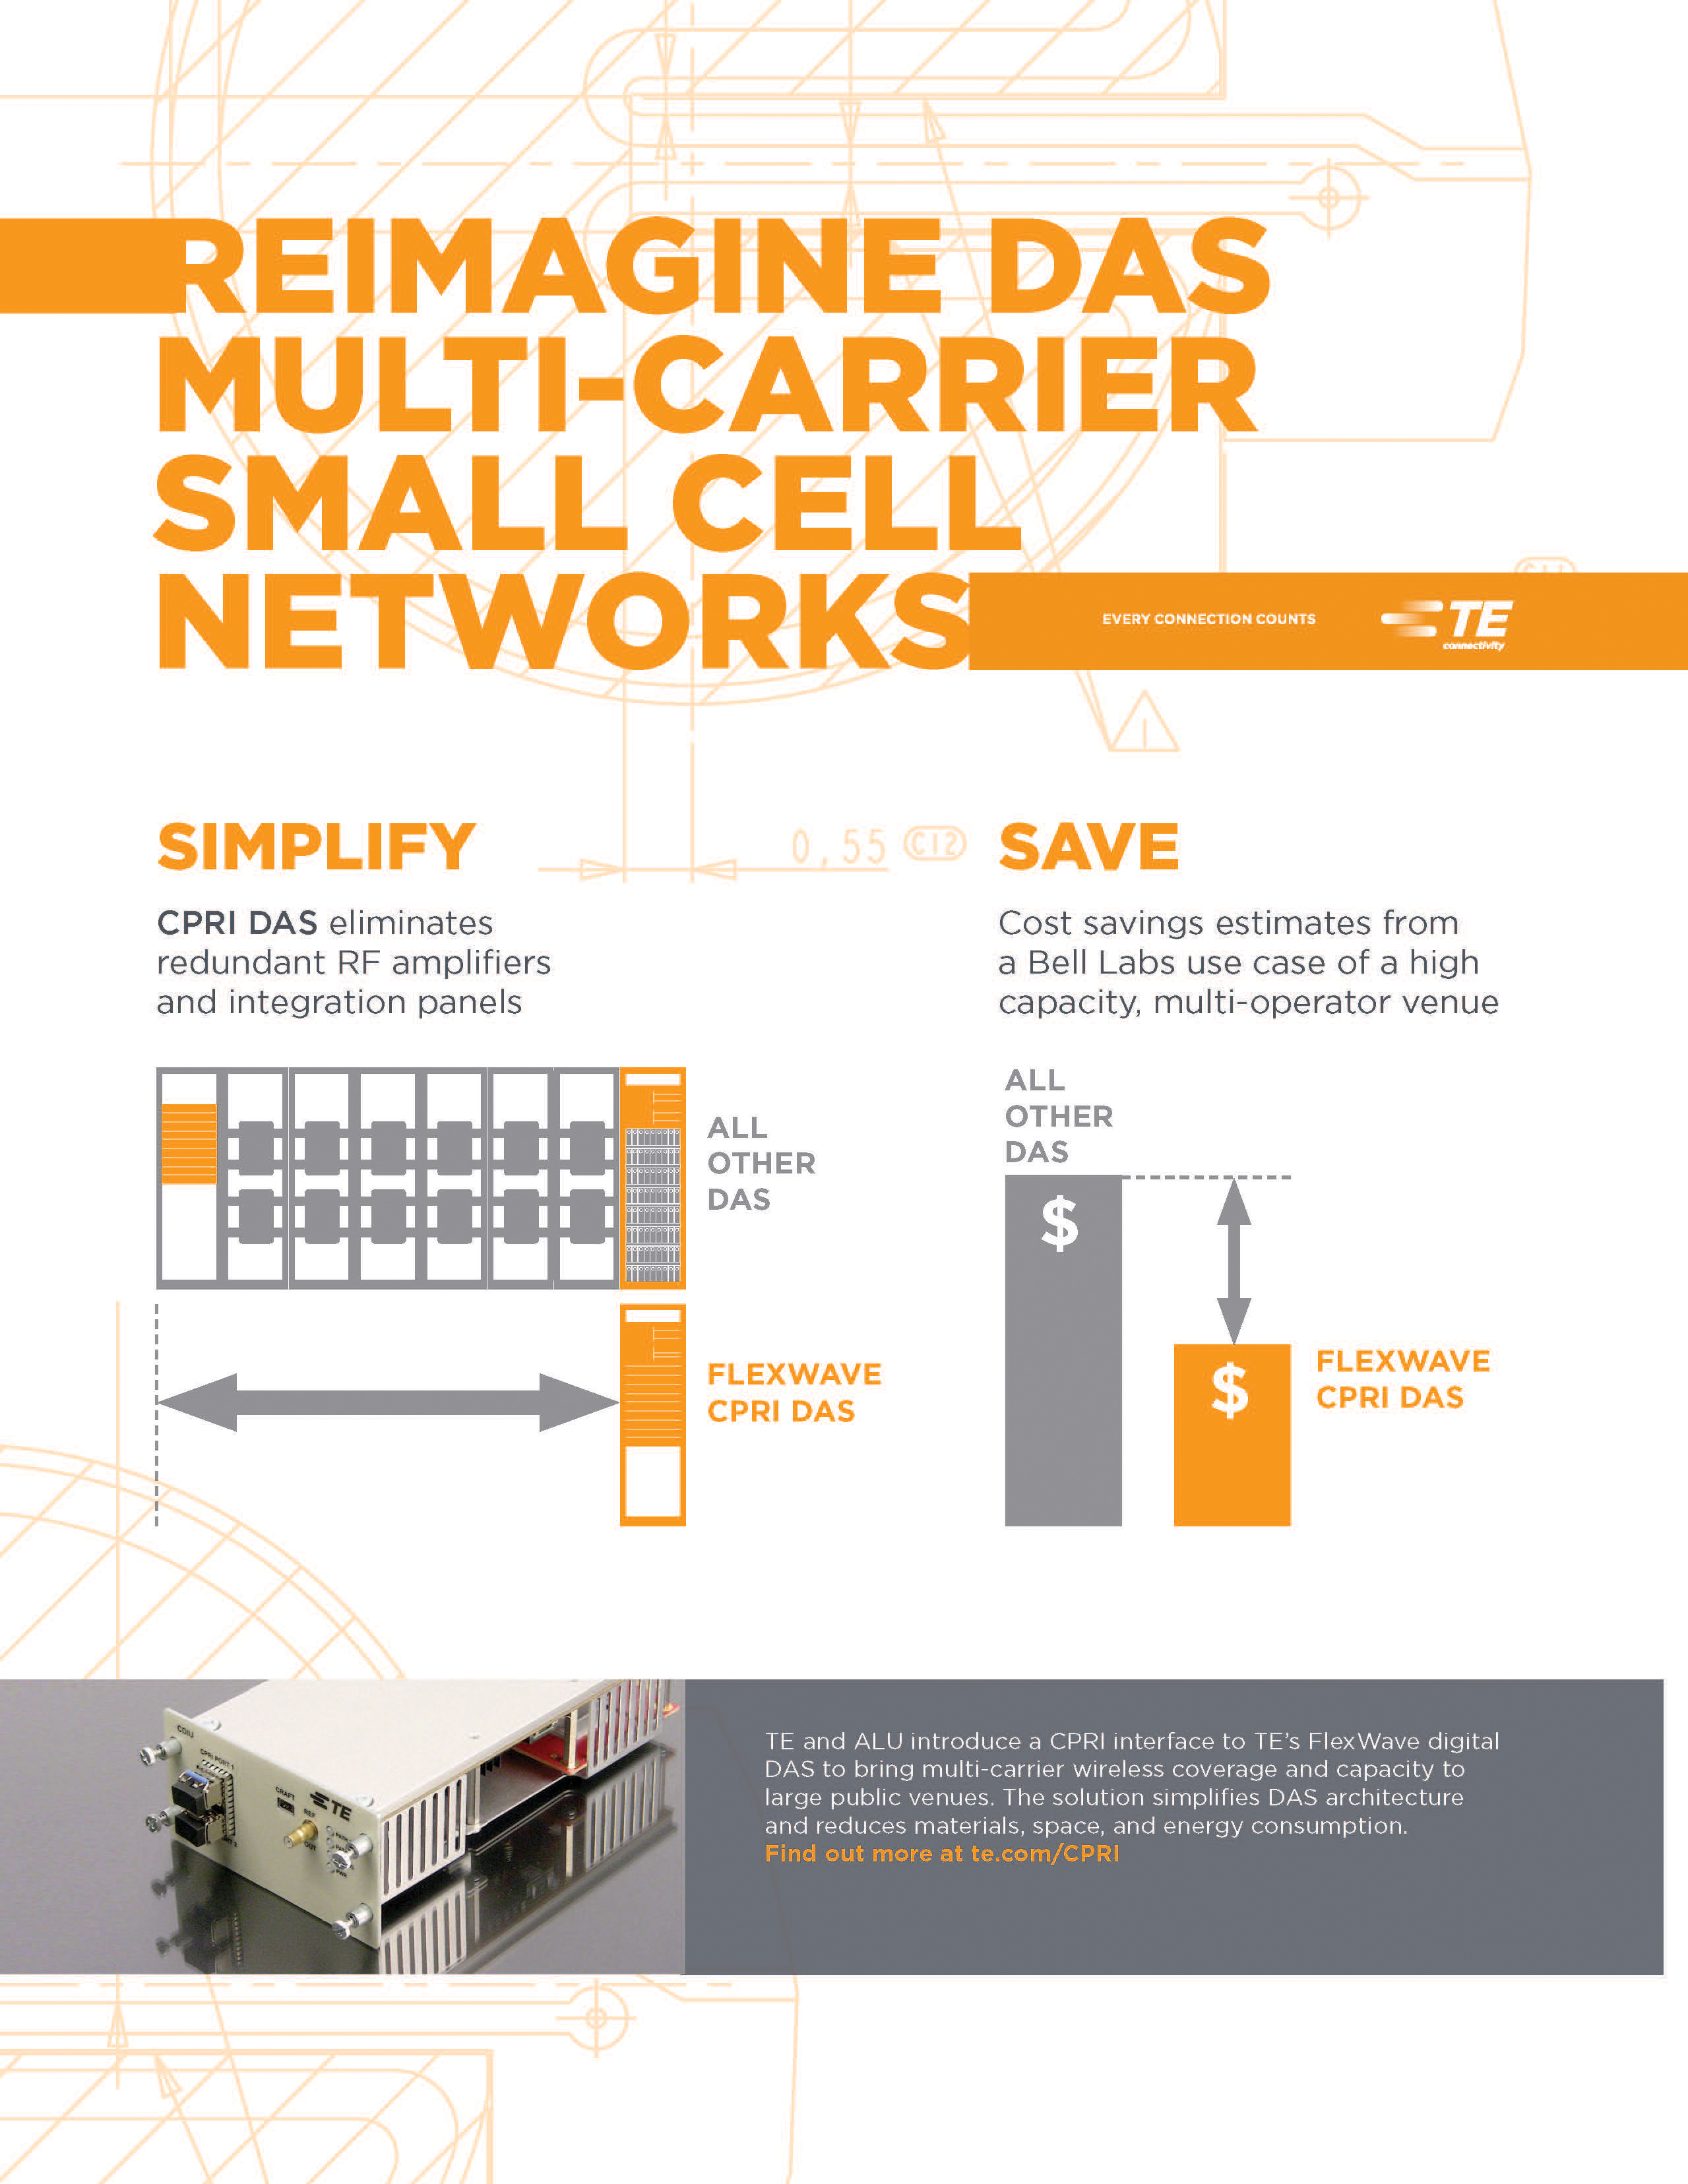 TE will feature the new CPRI DAS solution in booth 6B52 at Mobile World Congress to simplify and reduce costs in multi-carrier mobile networks (Graphic: Business Wire).